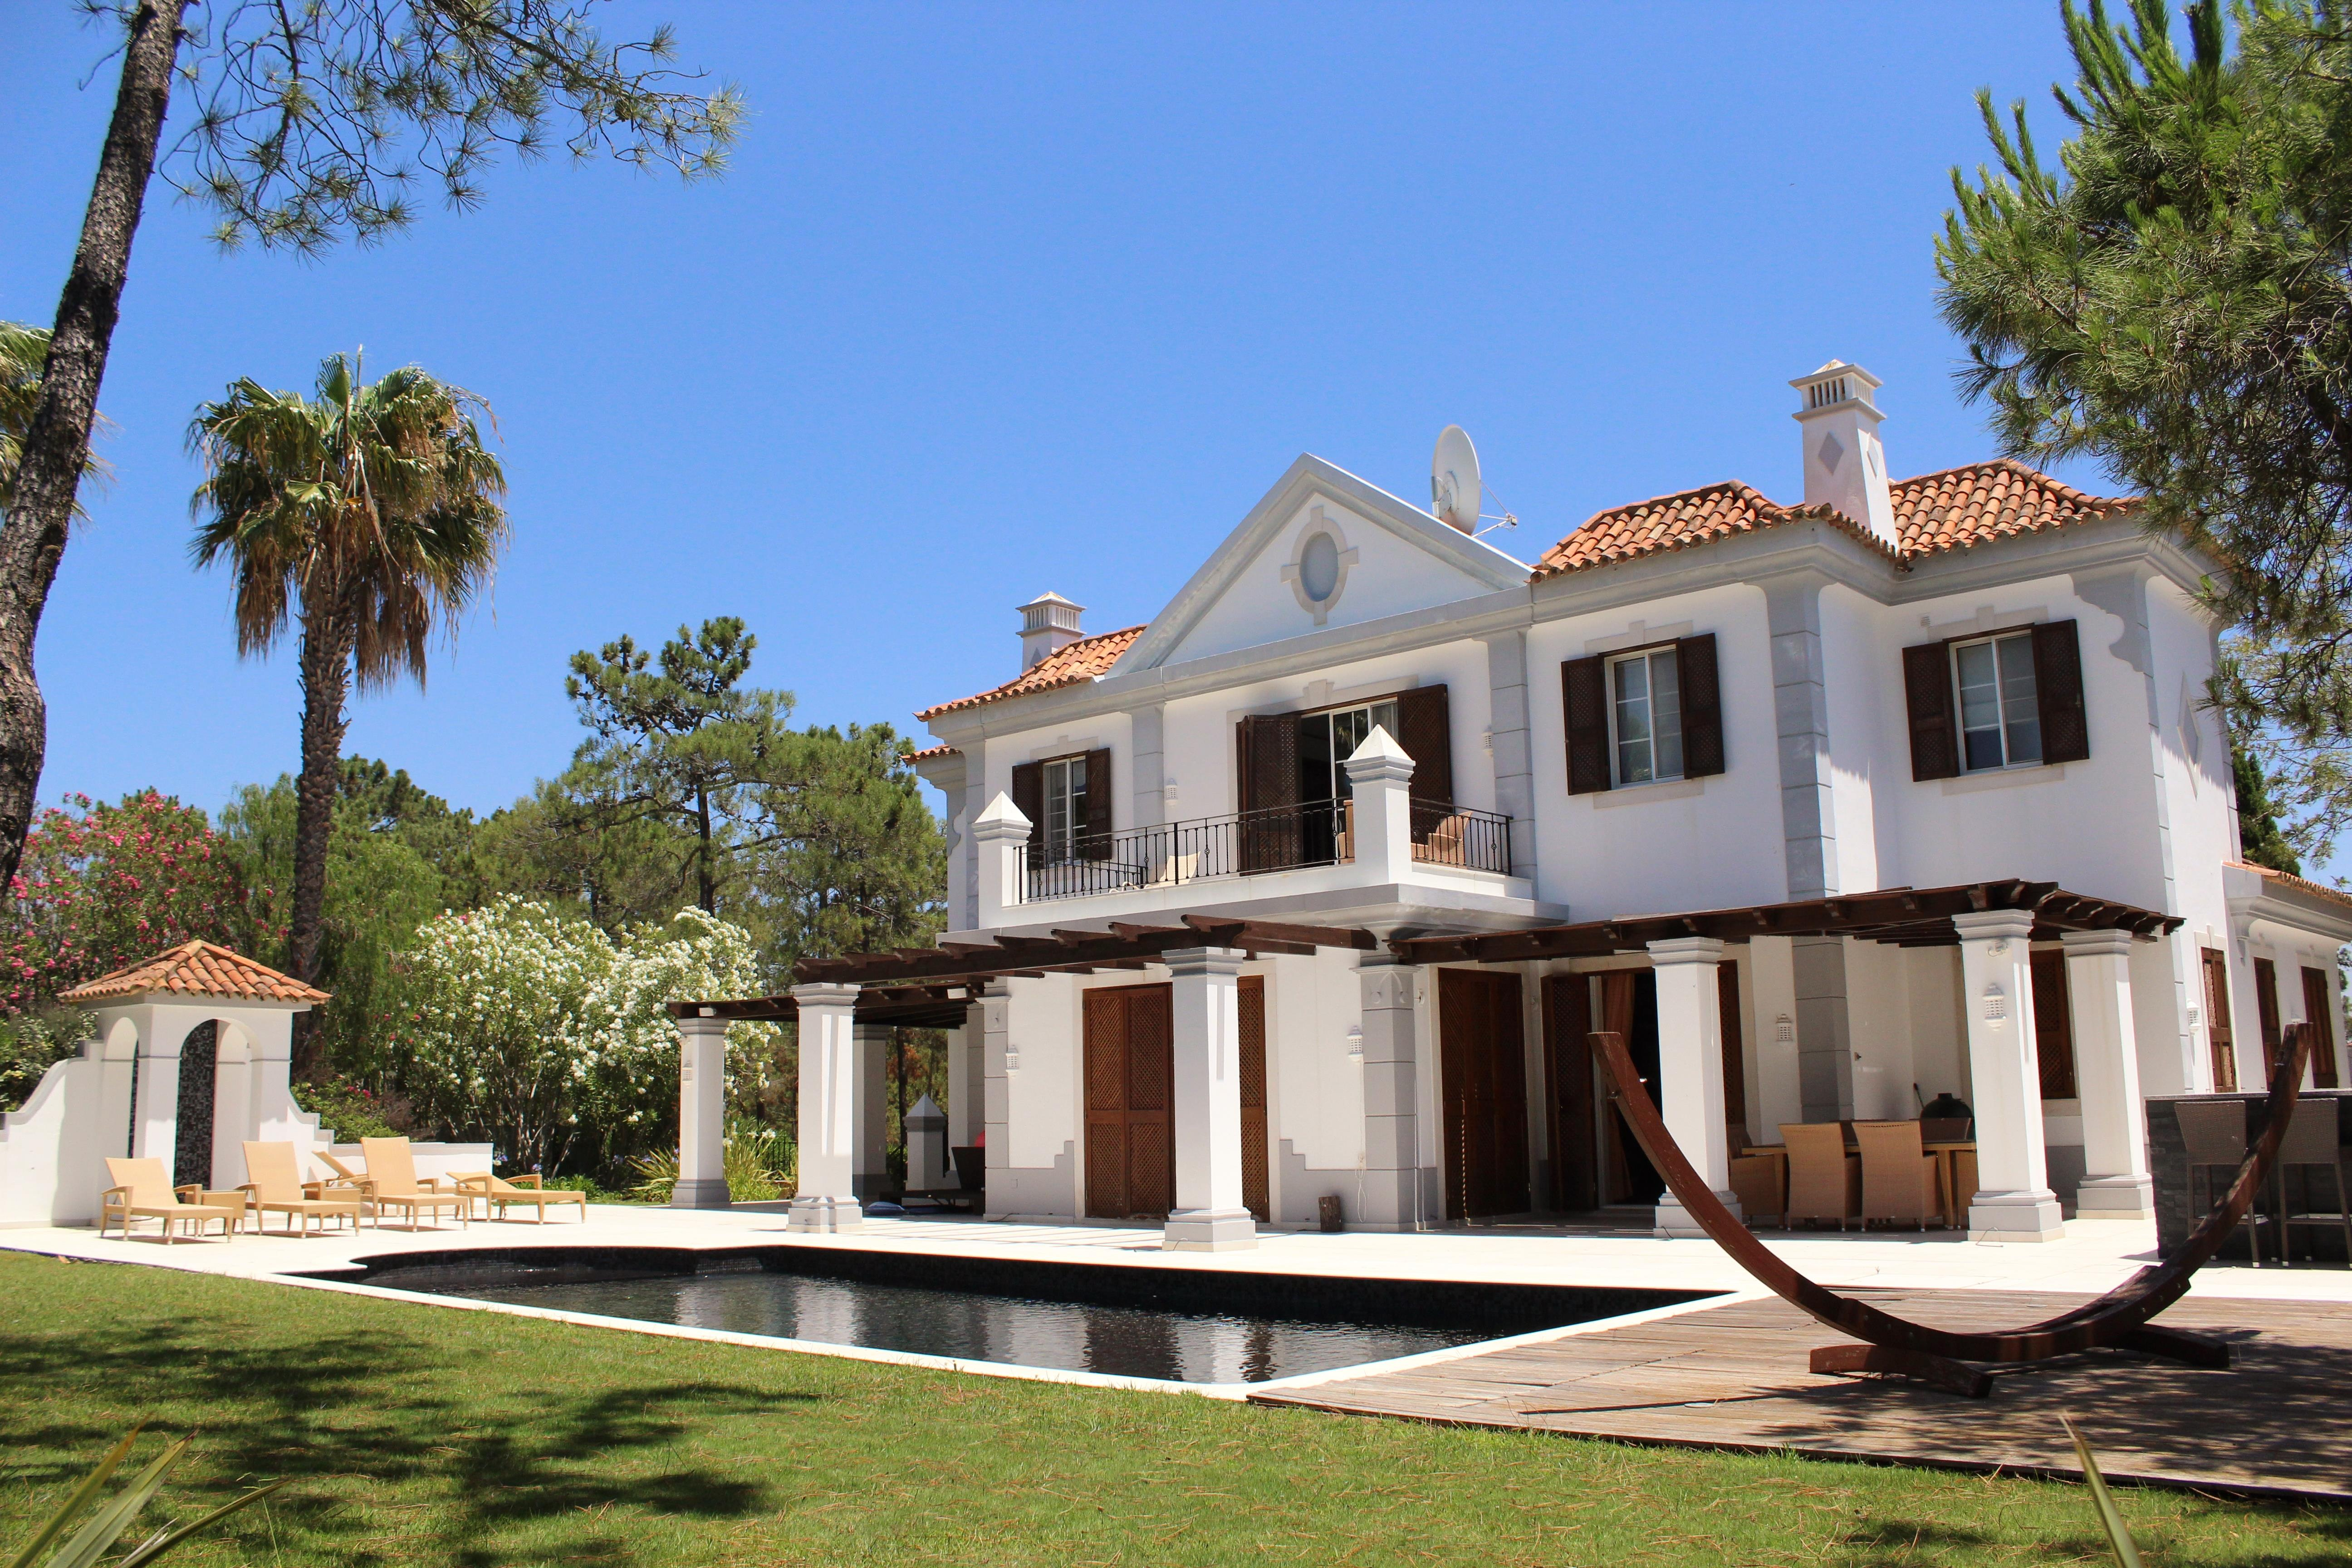 Maison unifamiliale pour l Vente à Detached house, 5 bedrooms, for Sale Loule, Algarve, 8135-106 Portugal